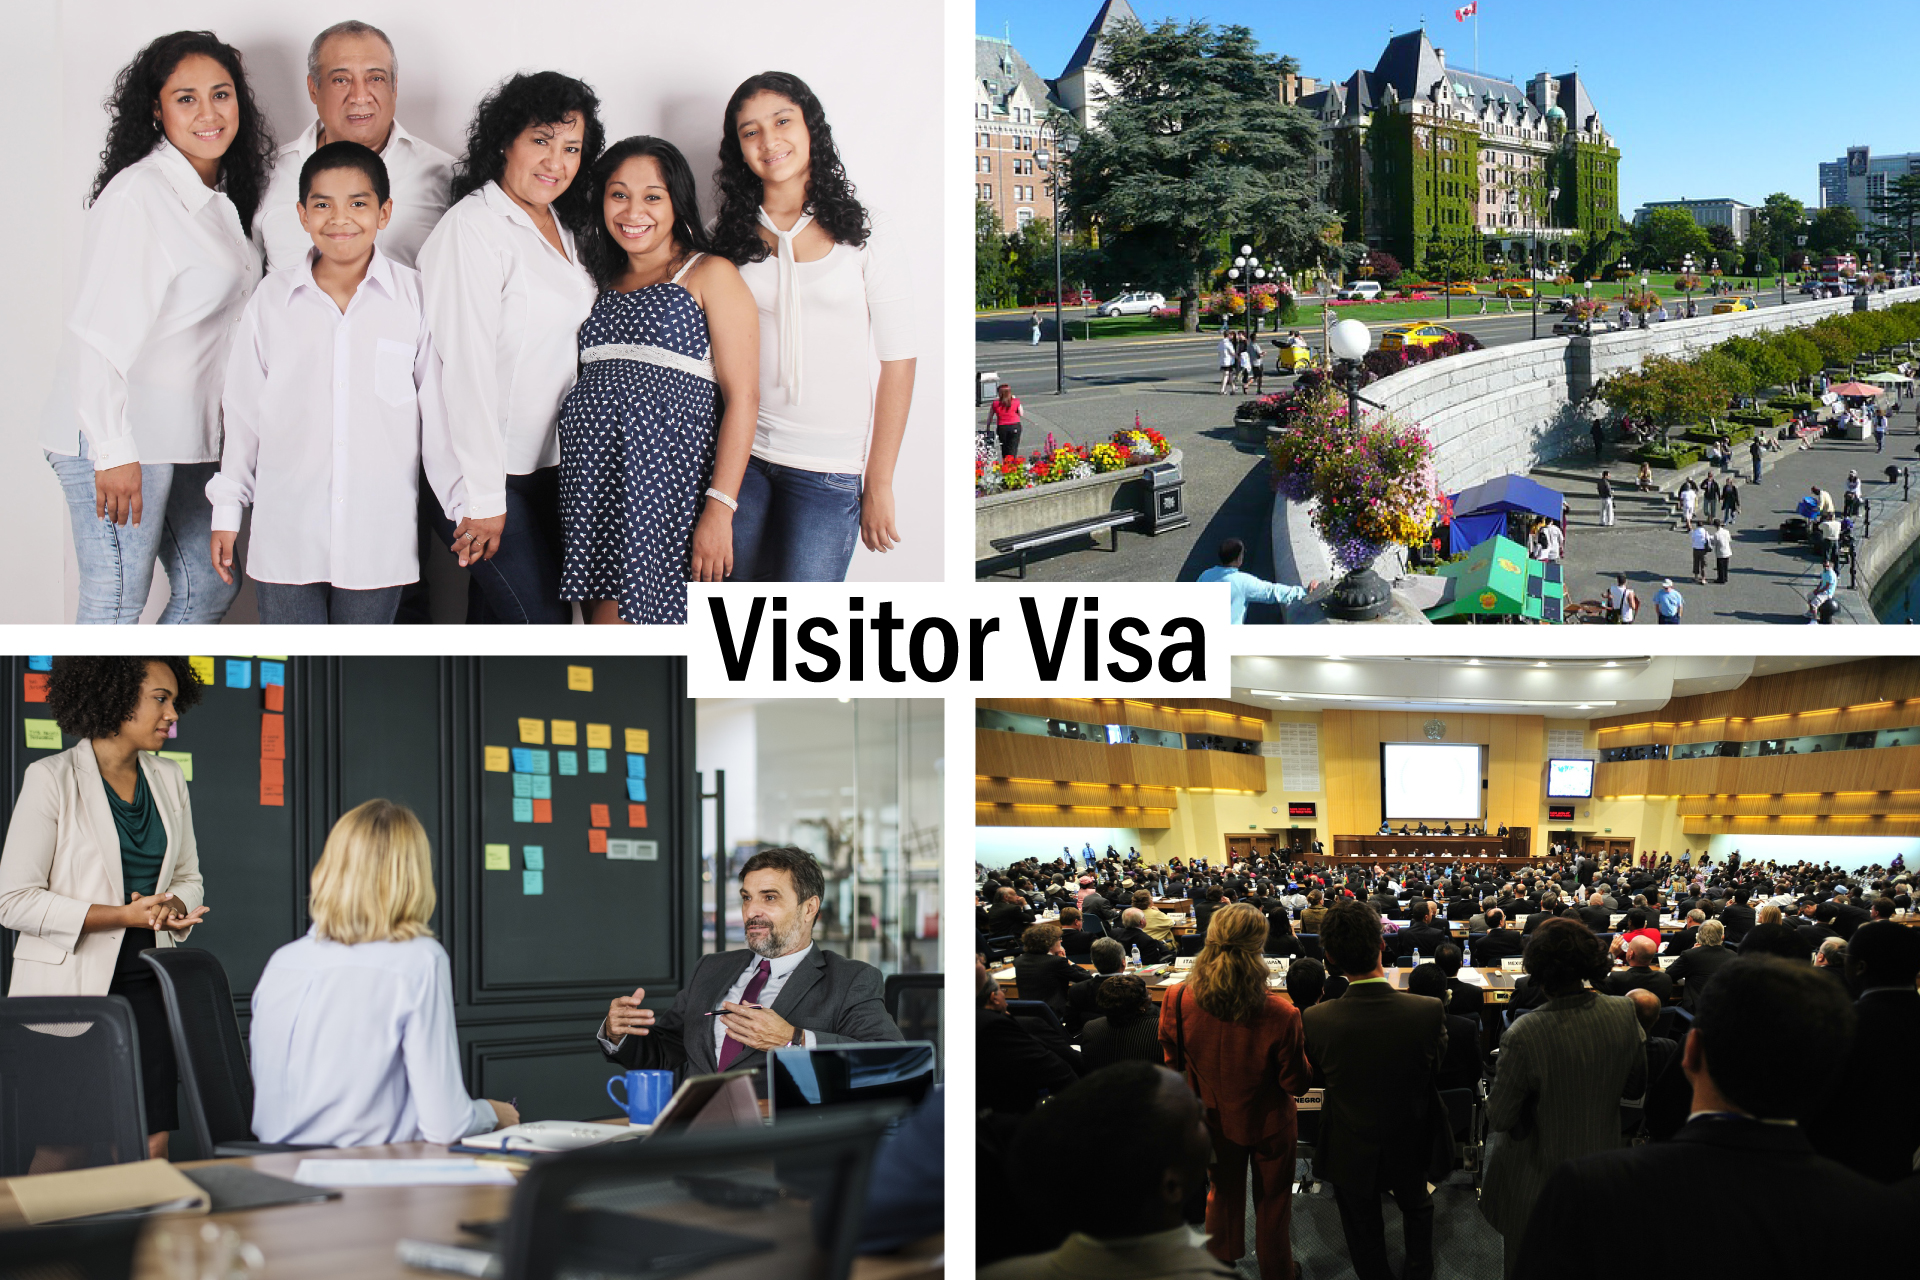 Canadian Visitor Visa